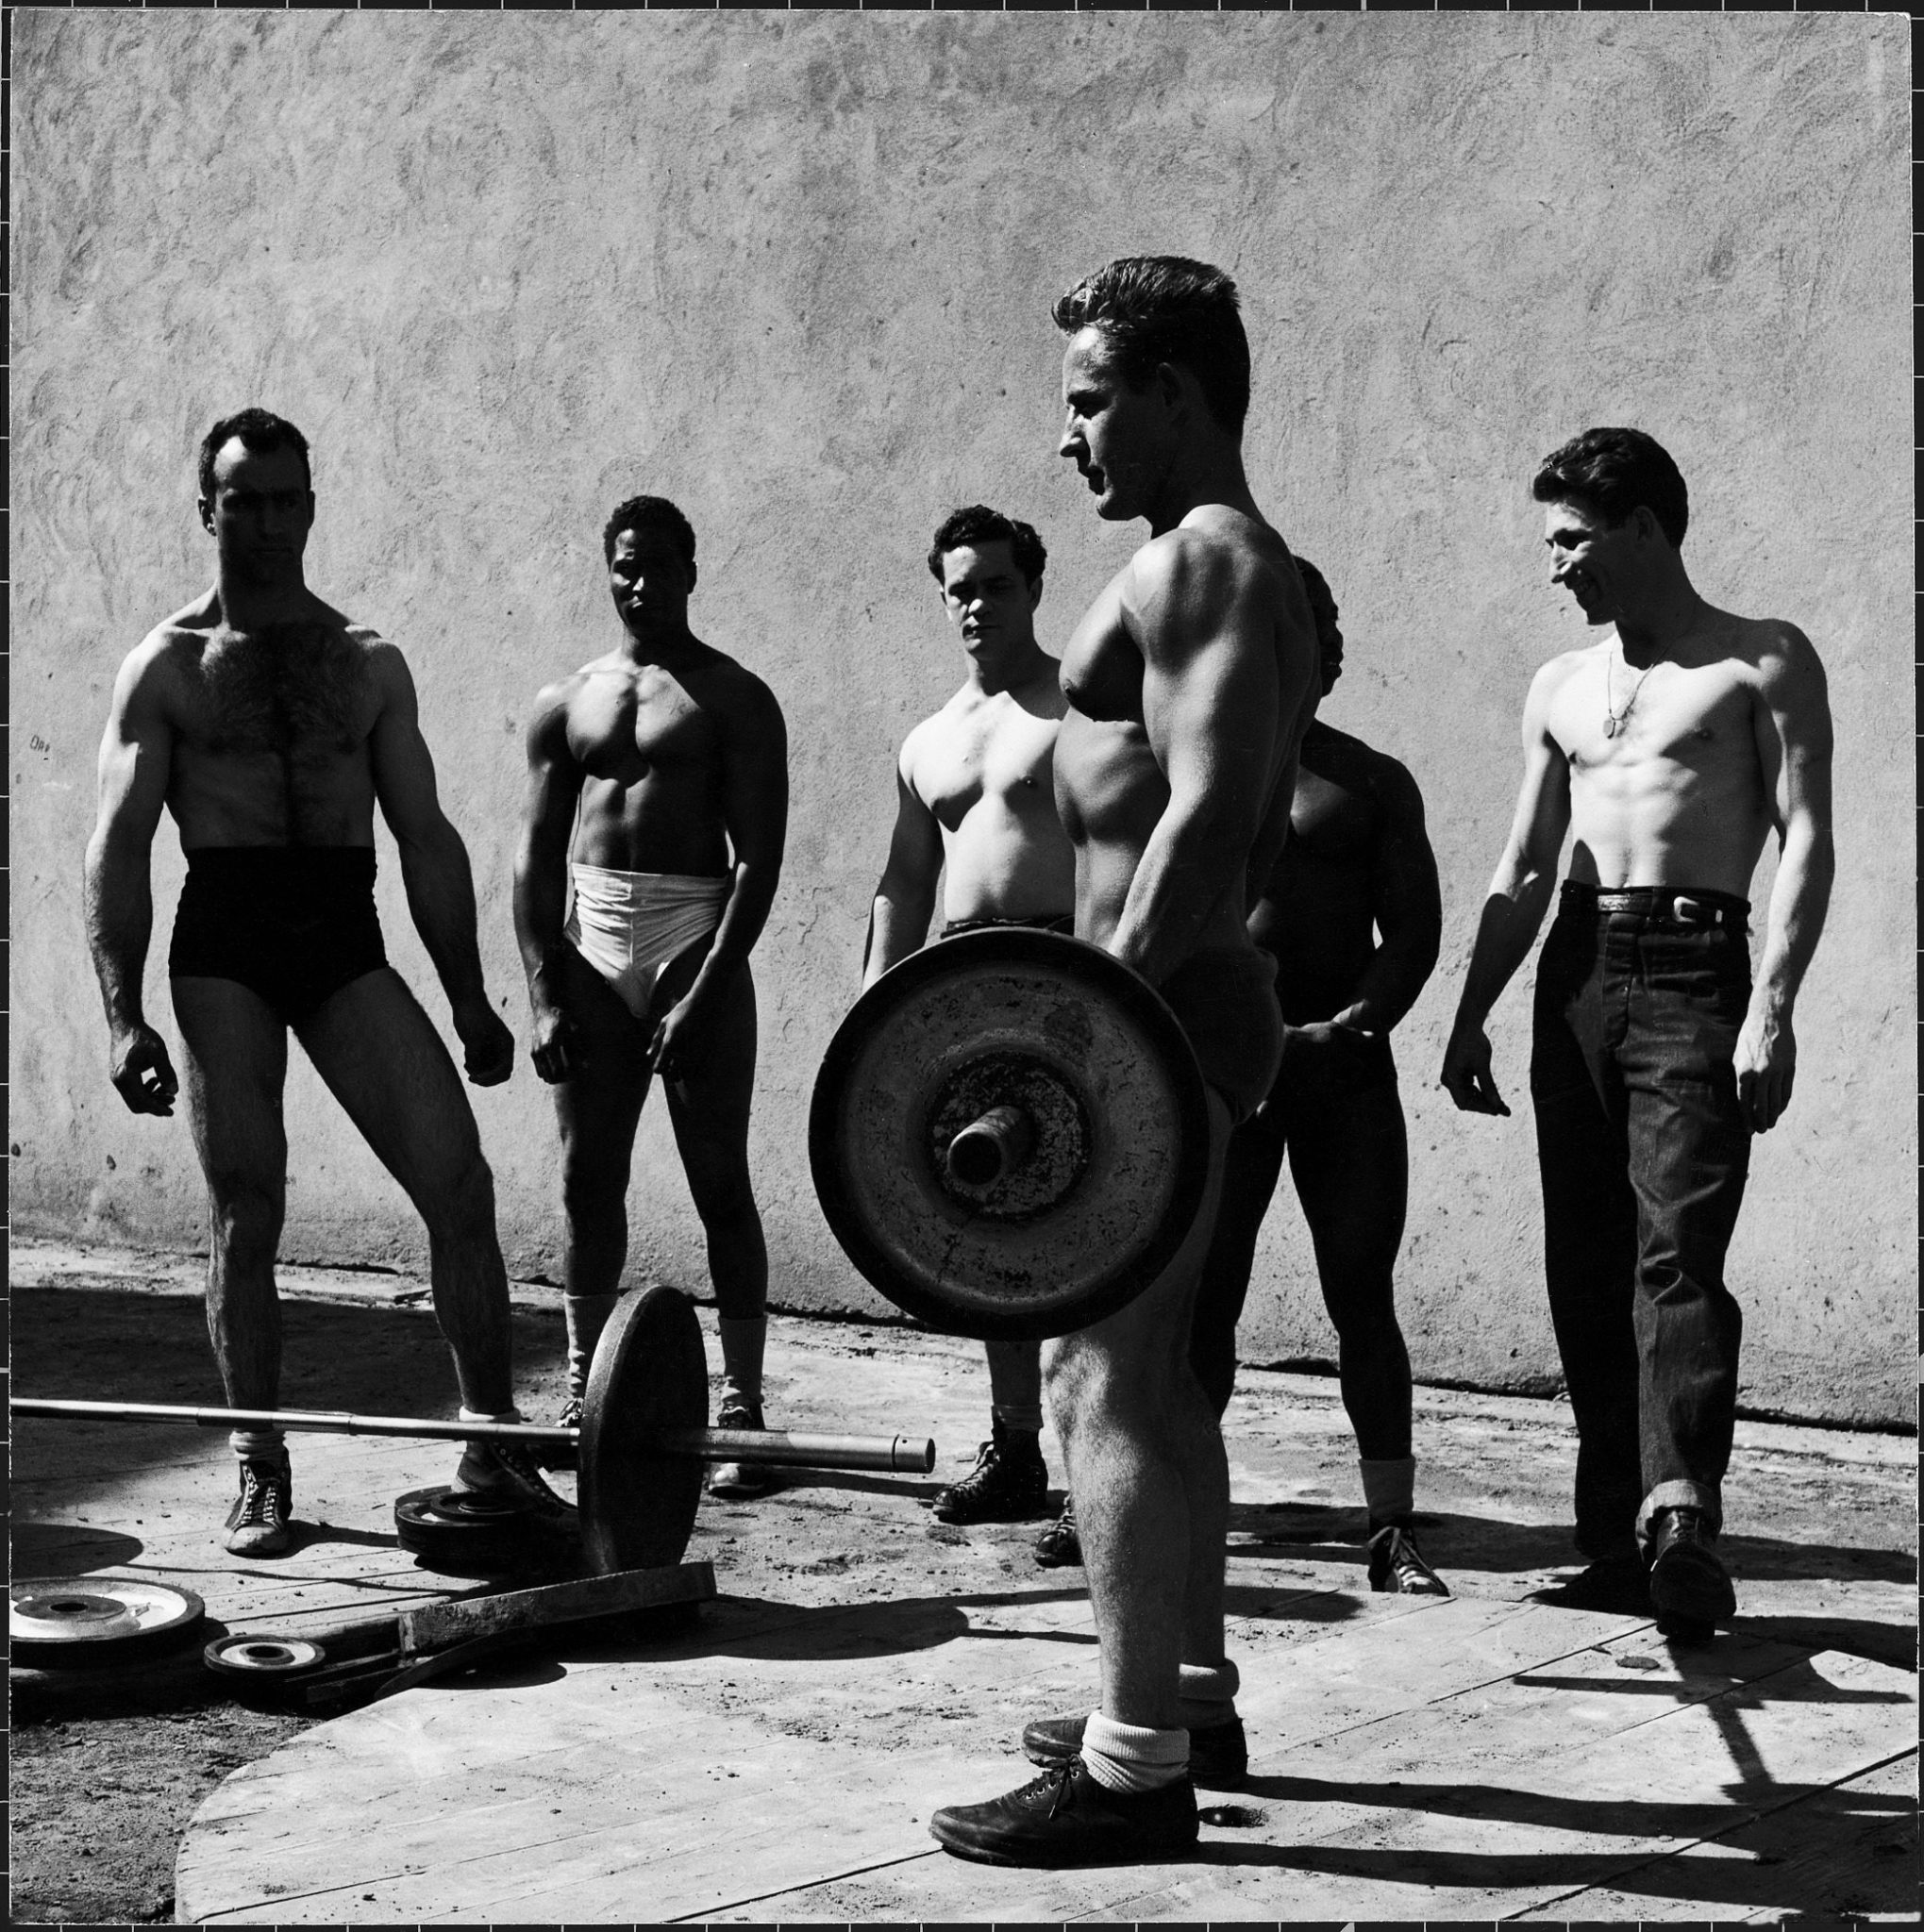 Prisoners at San Quentin weightlifting in prison yard during recreation period. (Photo by Charles Steinheimer/The LIFE Picture Collection © Meredith Corporation)